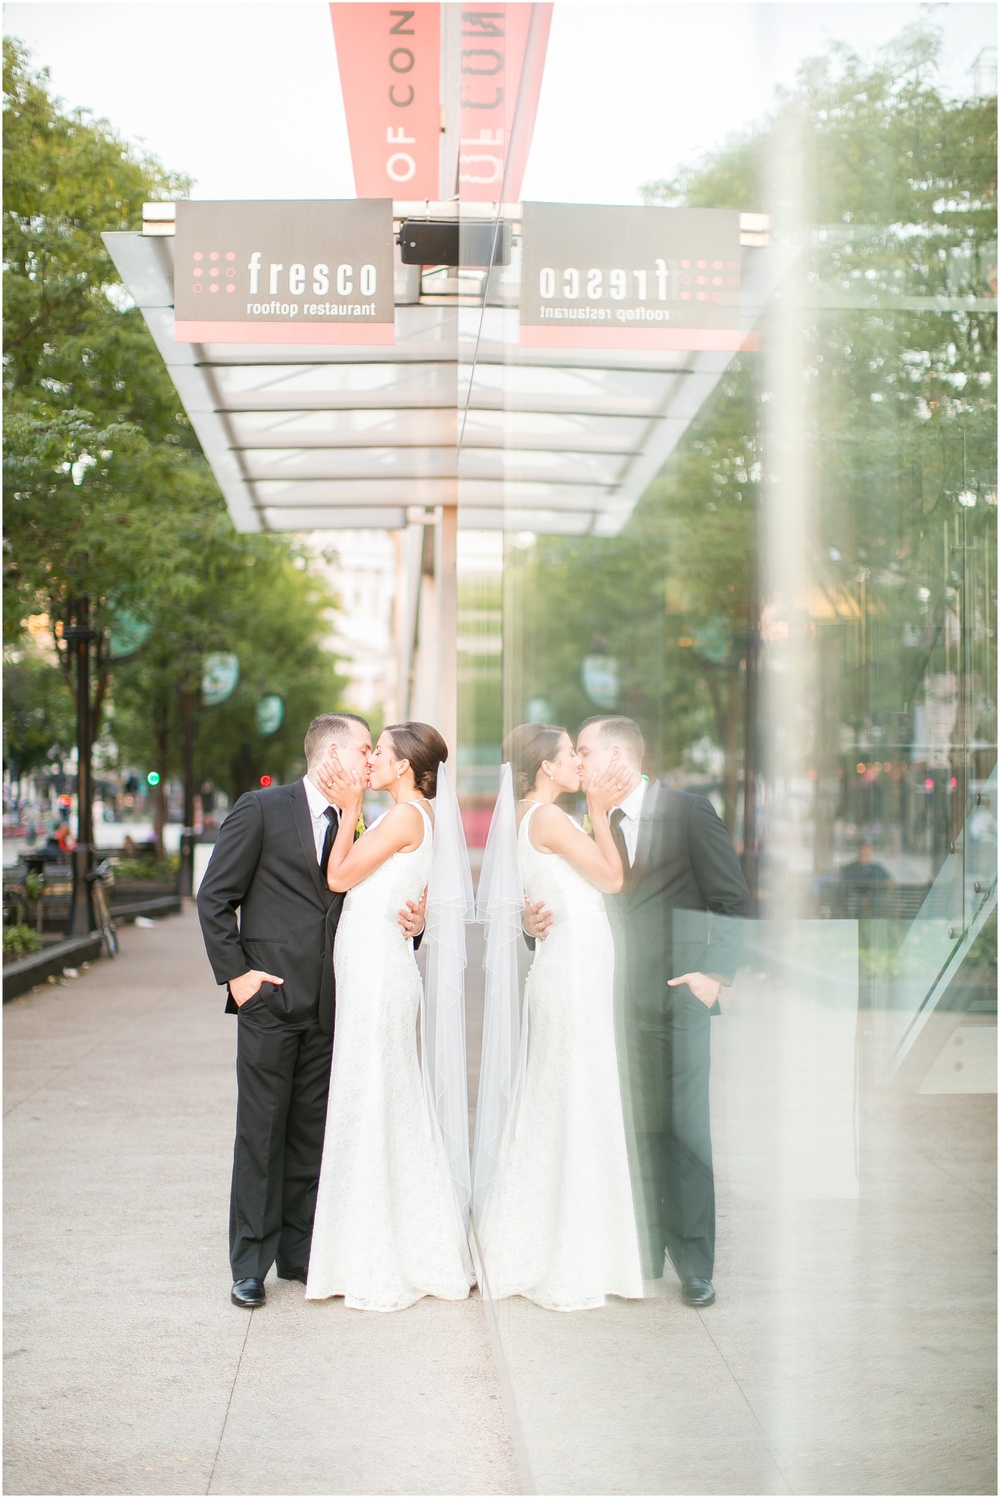 Downtown_Madison_Wisconsin_Rooftop_Fresco_Wedding_0085.jpg